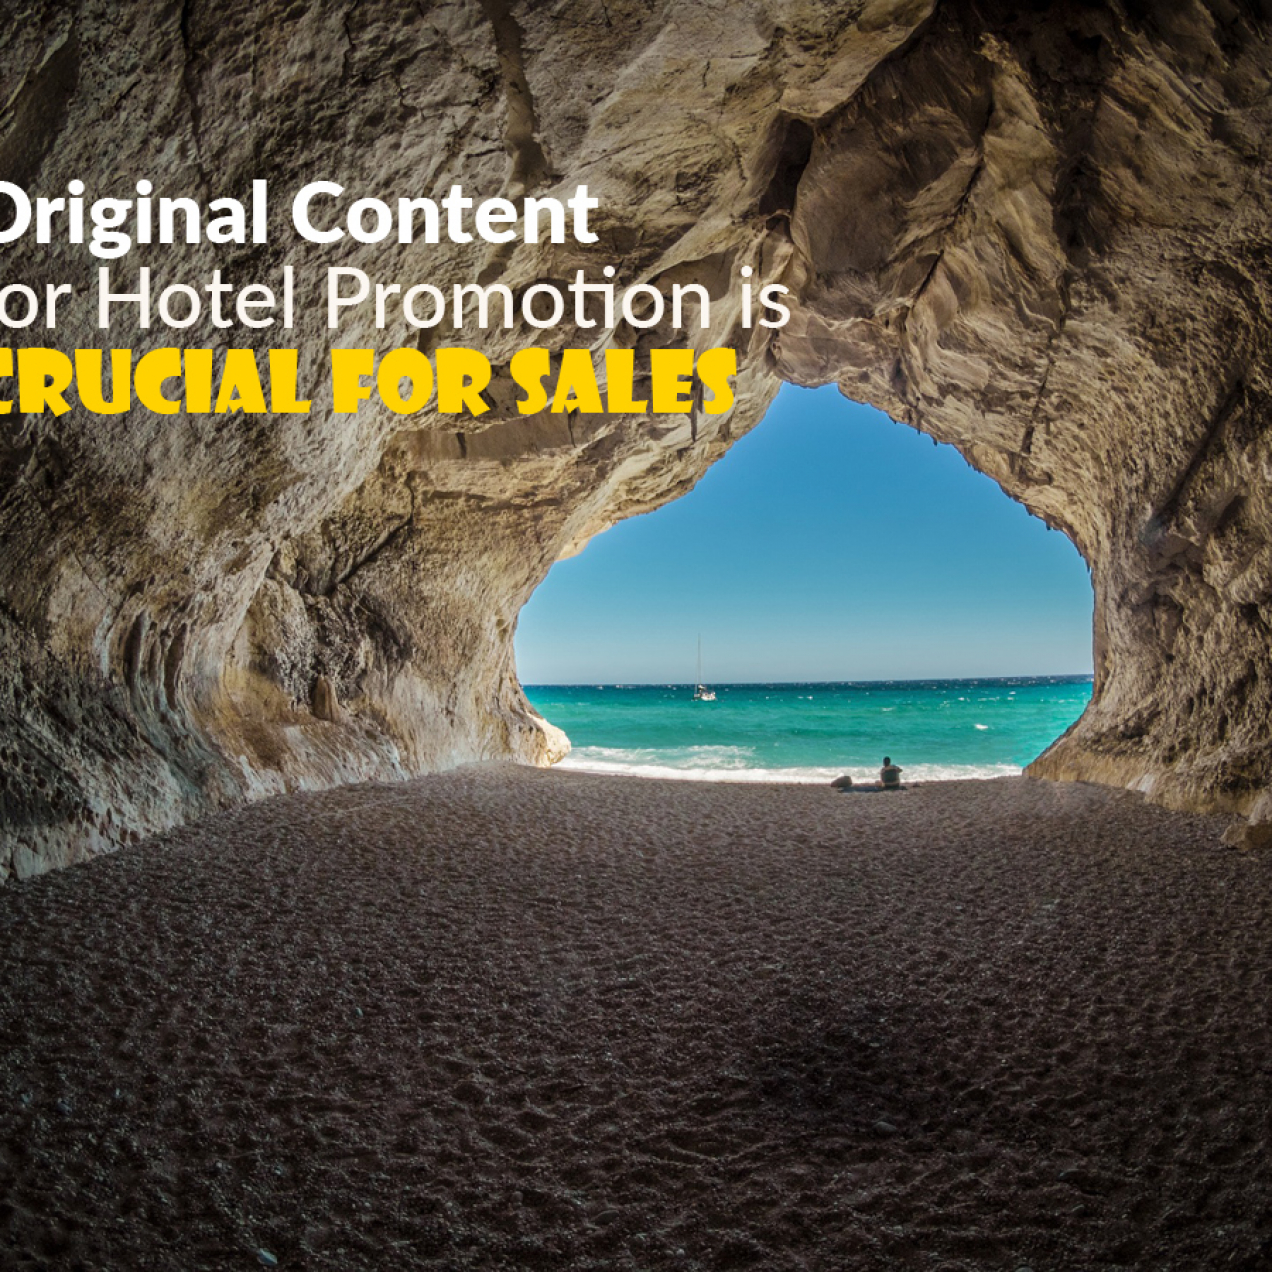 Original Content for Hotel Promotion Crucial for Sales